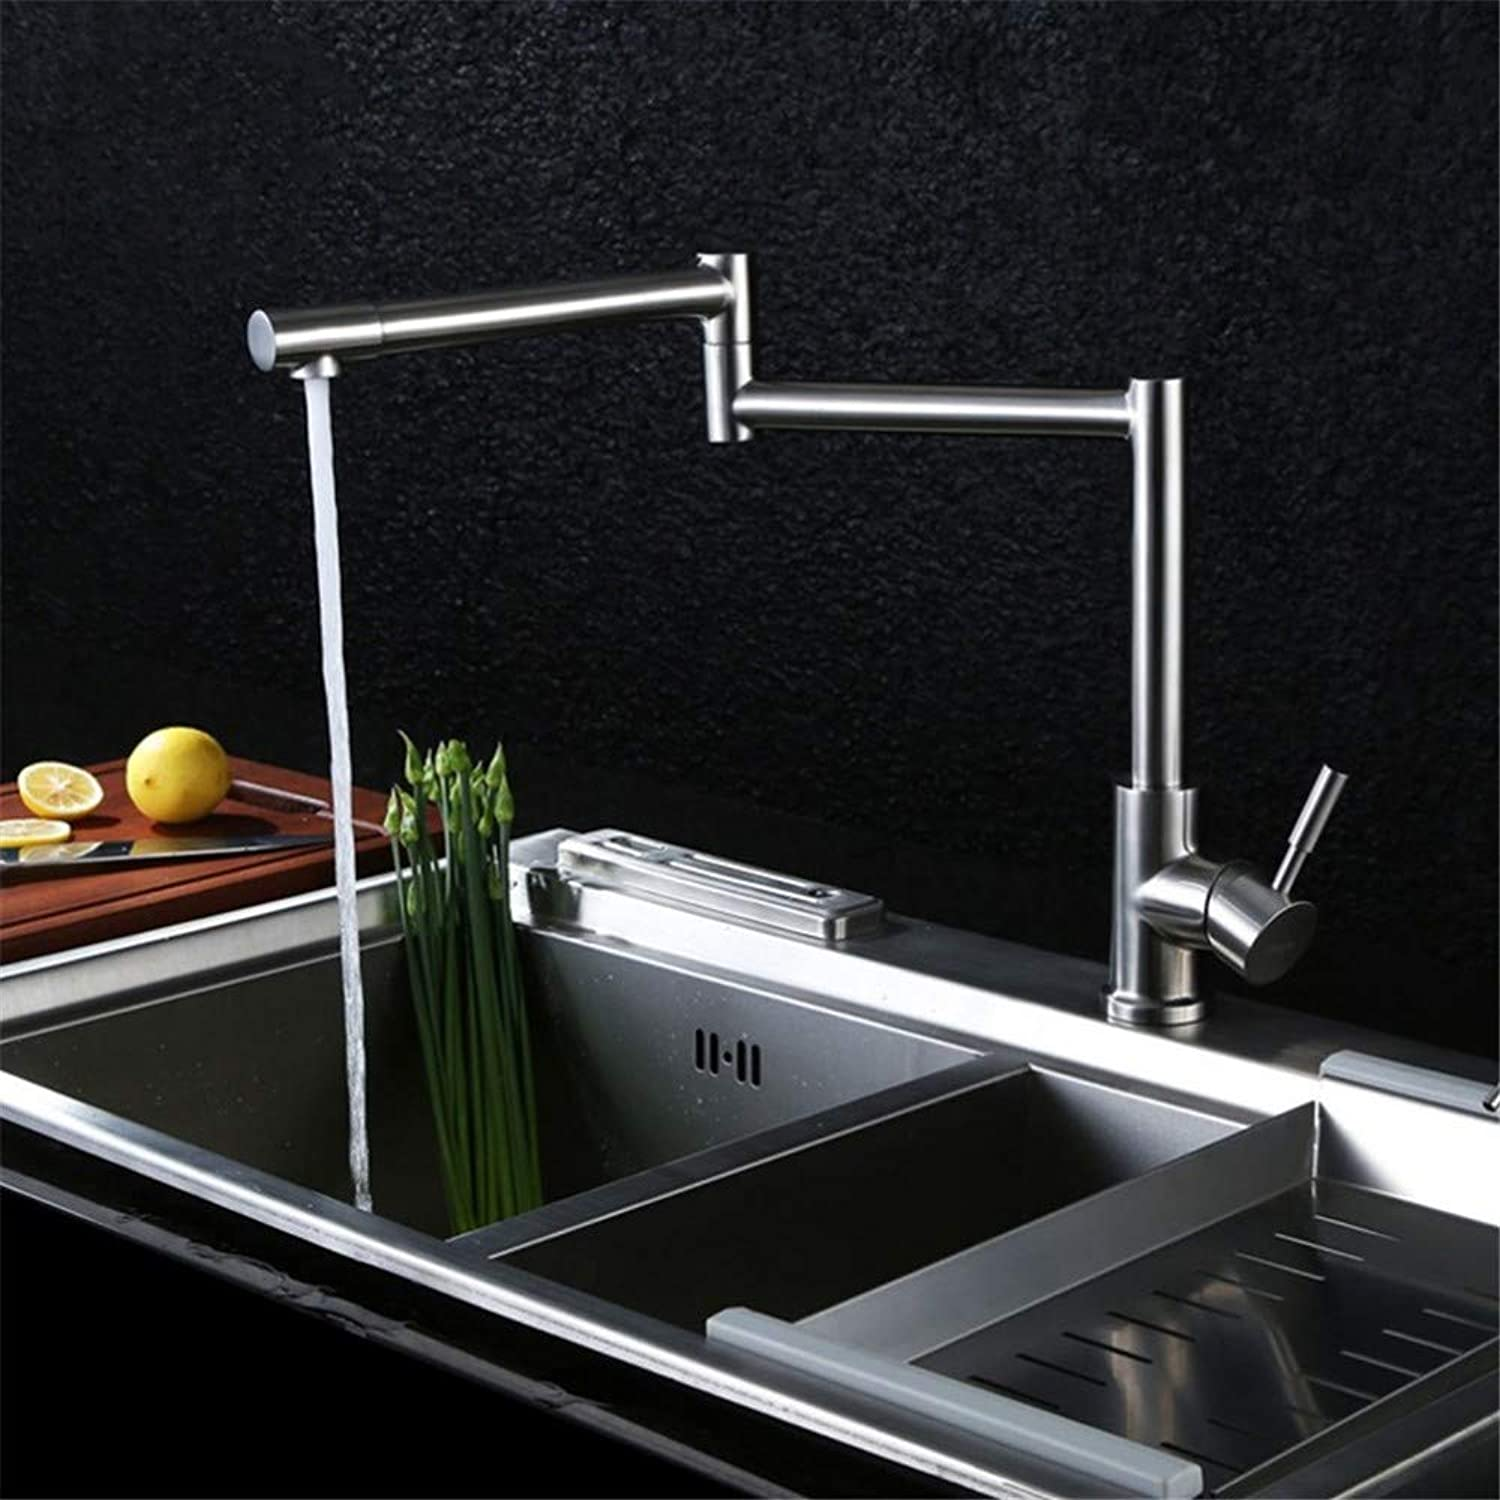 FZHLR Unleaded All 304 Stainless Steel Kitchen Faucet High Quality Cold and Hot Mixer Water Faucet,Brushed Nickle 360 Degree redation